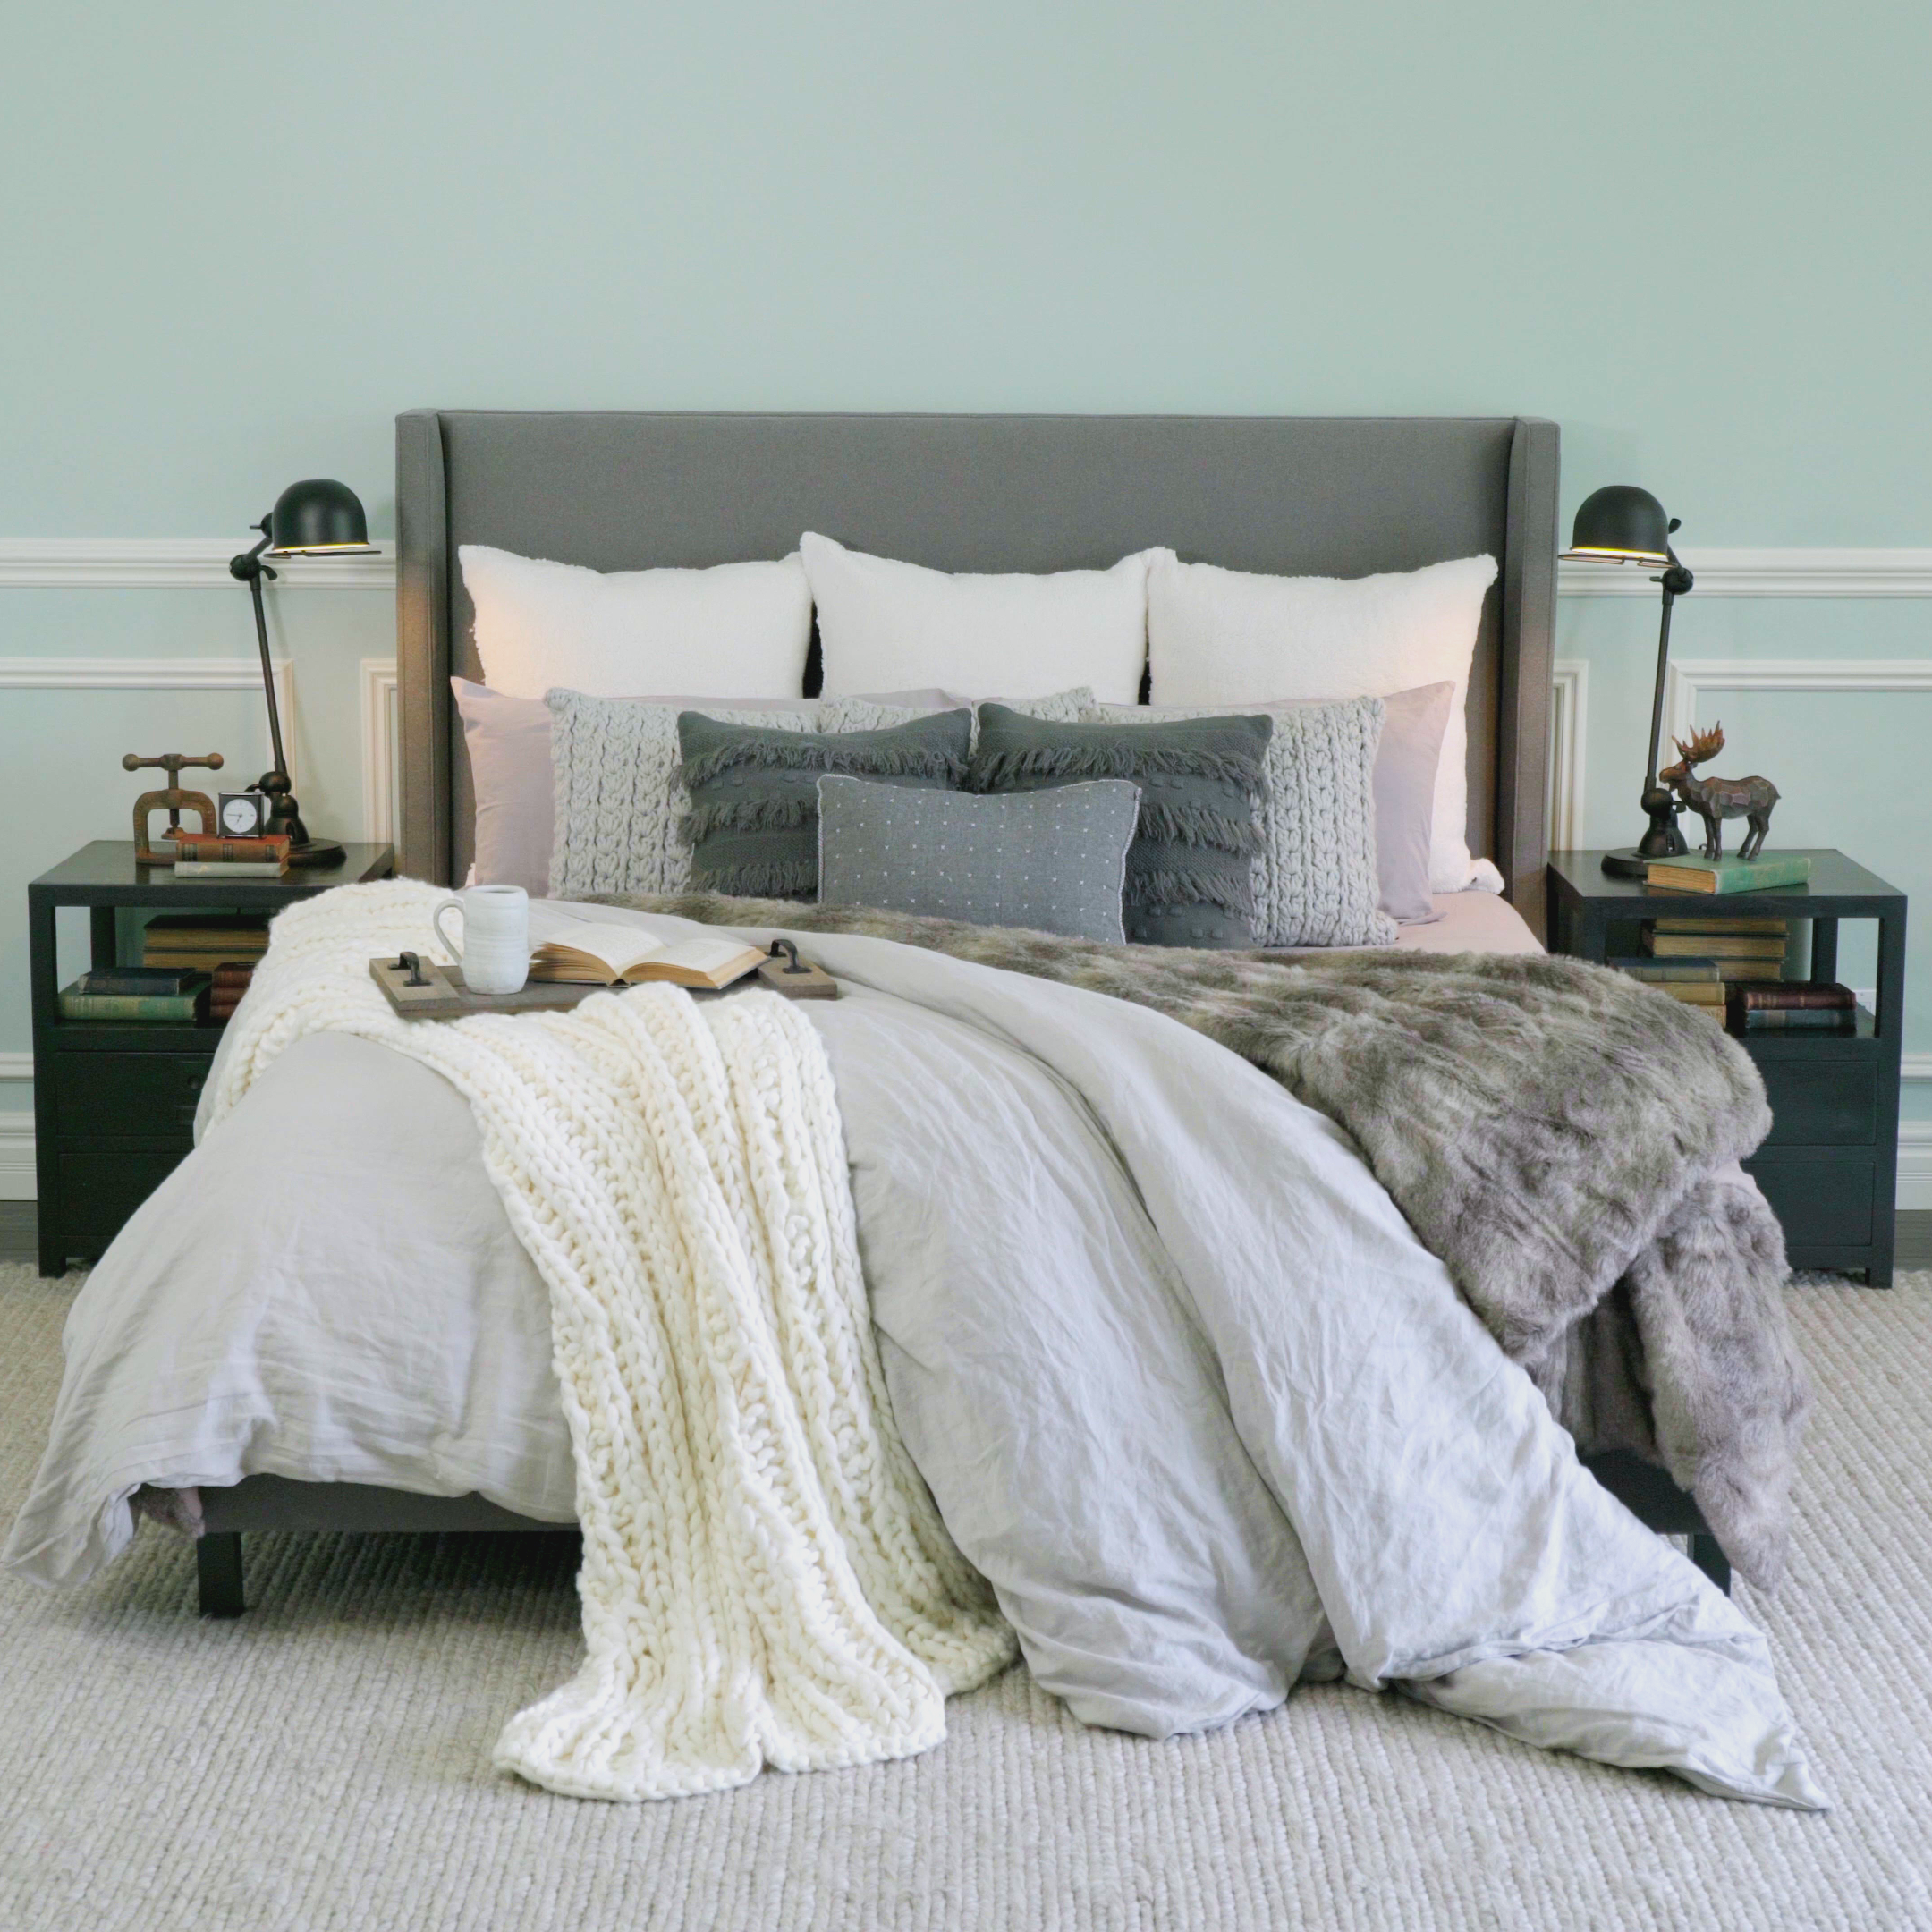 Tired Of Fighting To Get The Duvet Cover Over Your Comforter Let This Hack Make Your Life Way Easier Video Home Decor Bedroom Bedroom Decor Cozy Room Decor Bedroom